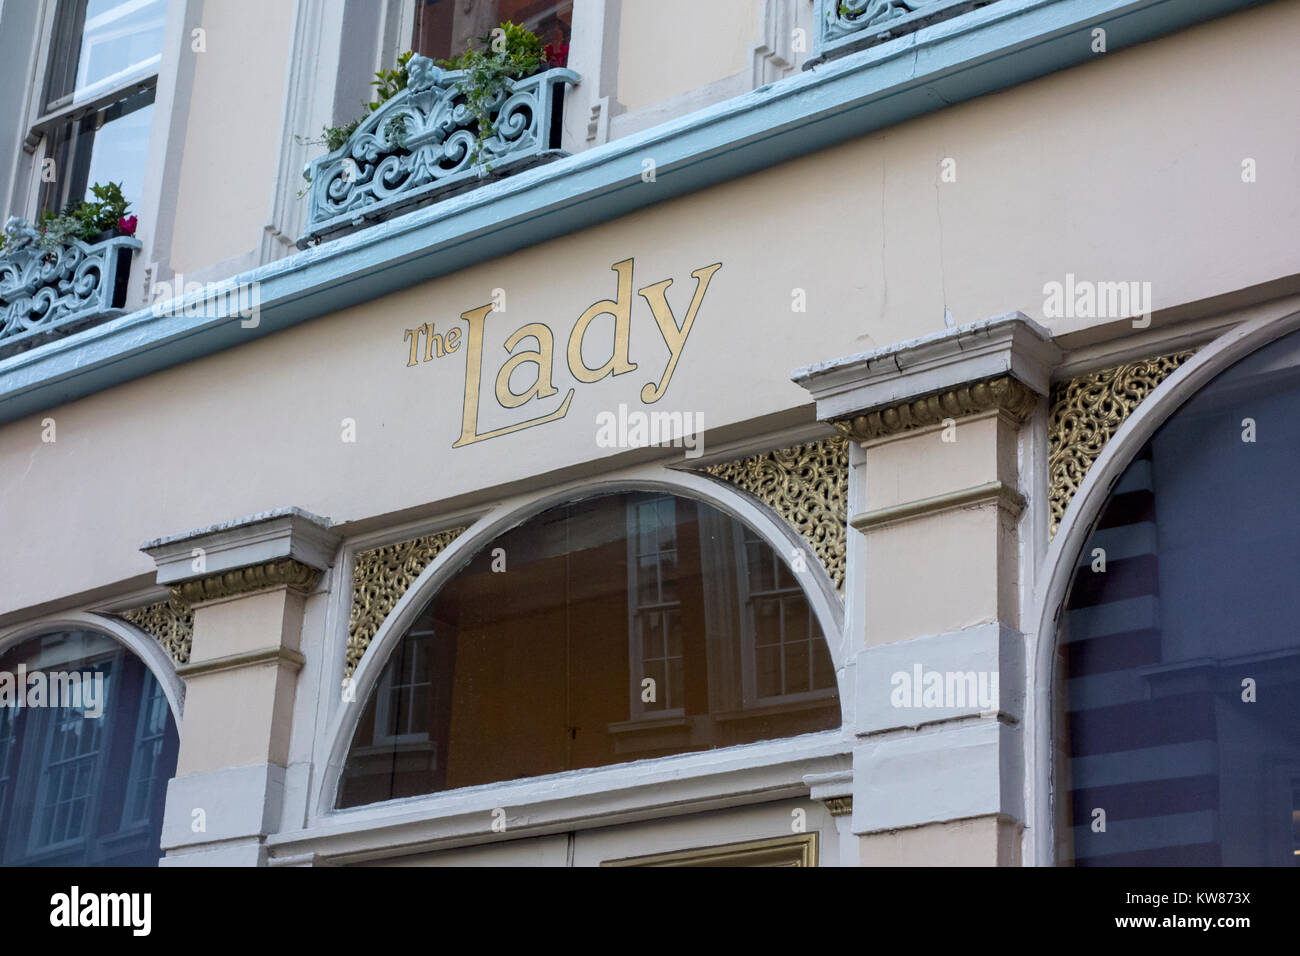 The Lady, Bedford Street, Covent Garden, London, UK - Stock Image